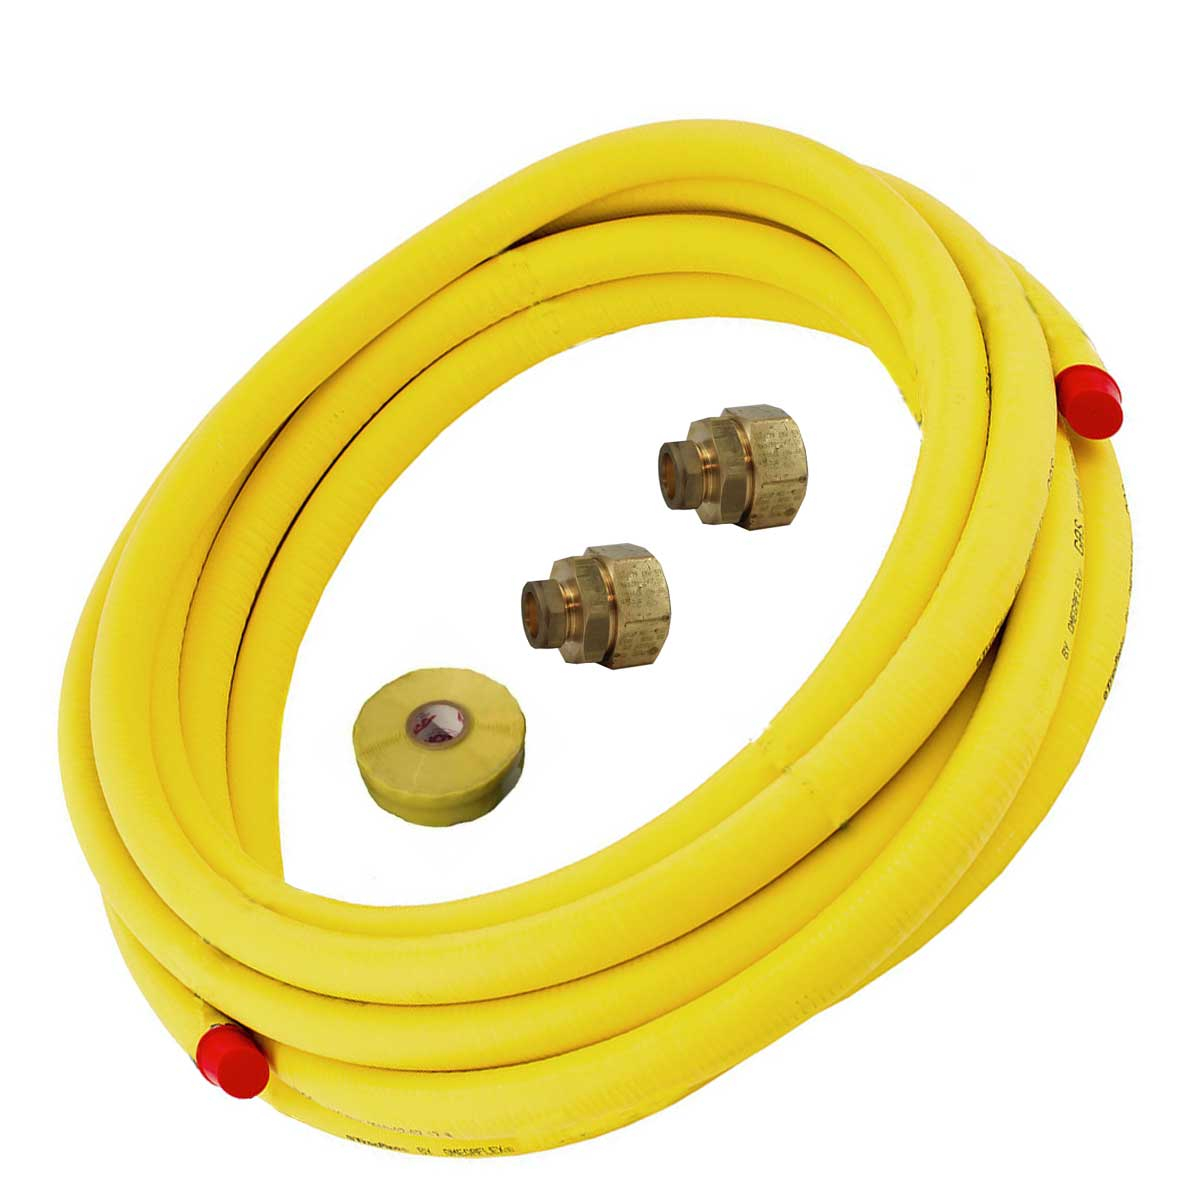 TracPipe 15m Flexible Gas Pipe Fittings and Tape Pack 15mm